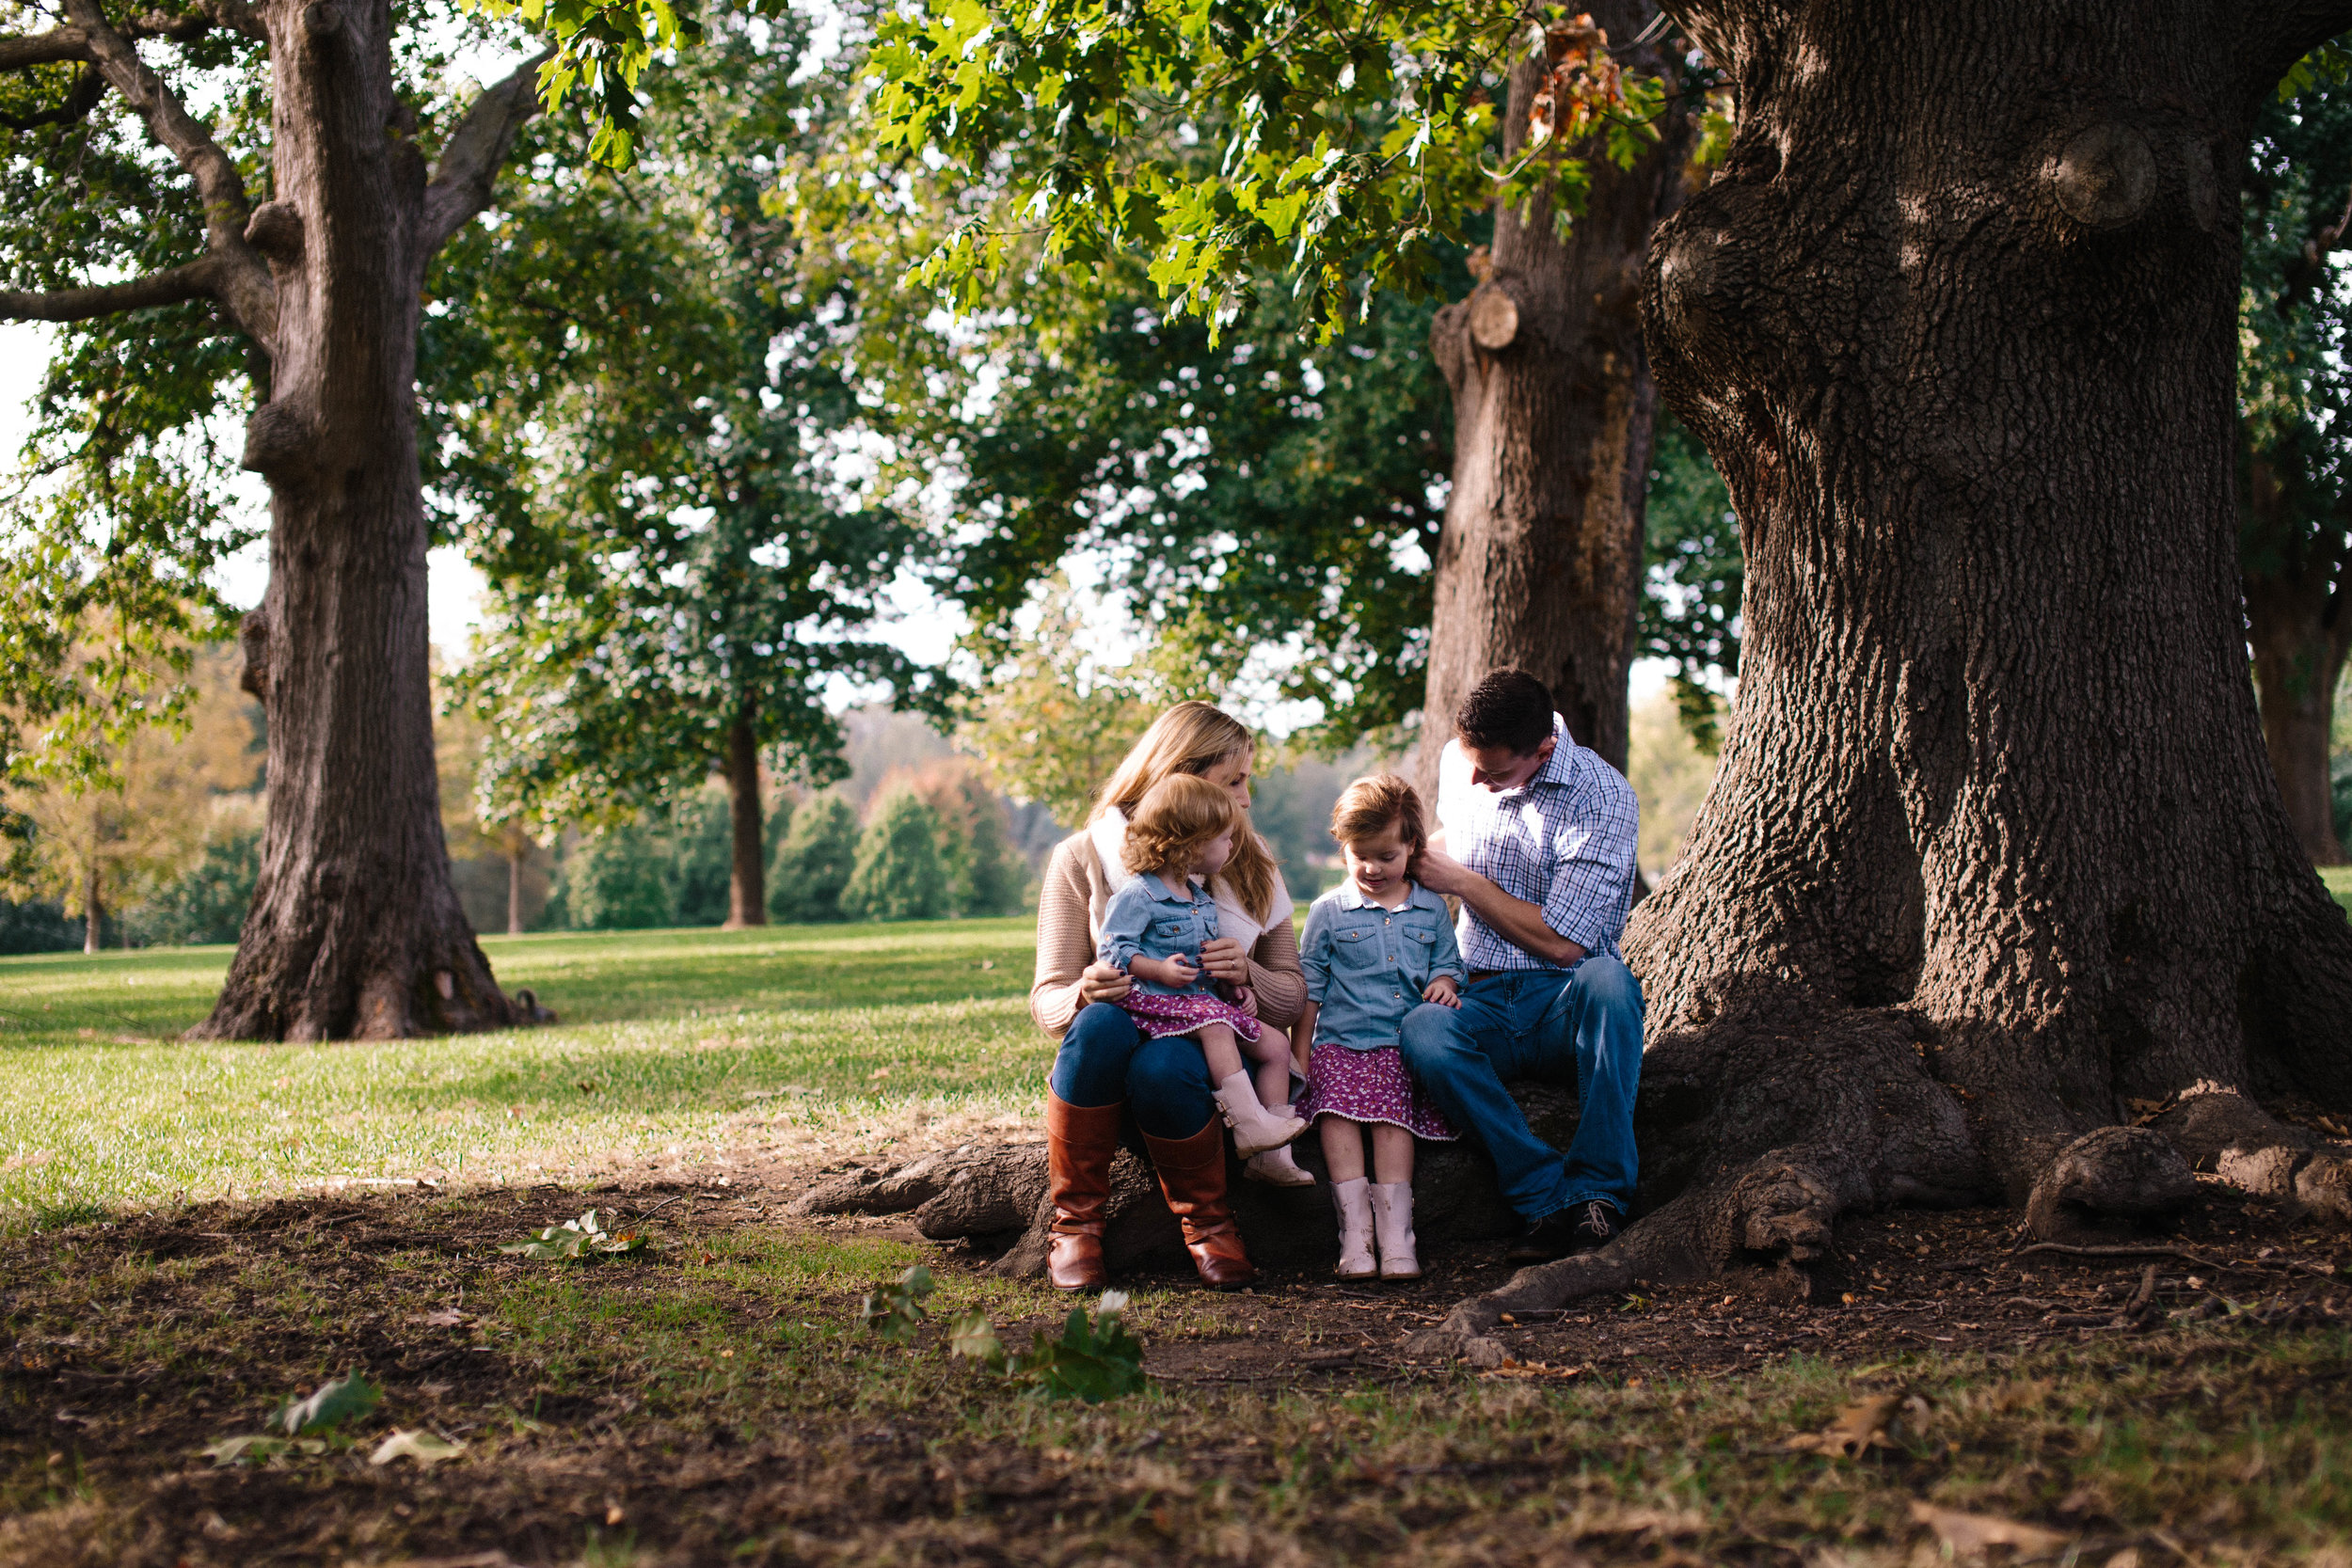 The Van Essen Family | Hannahill Photography | Kansas City, MO